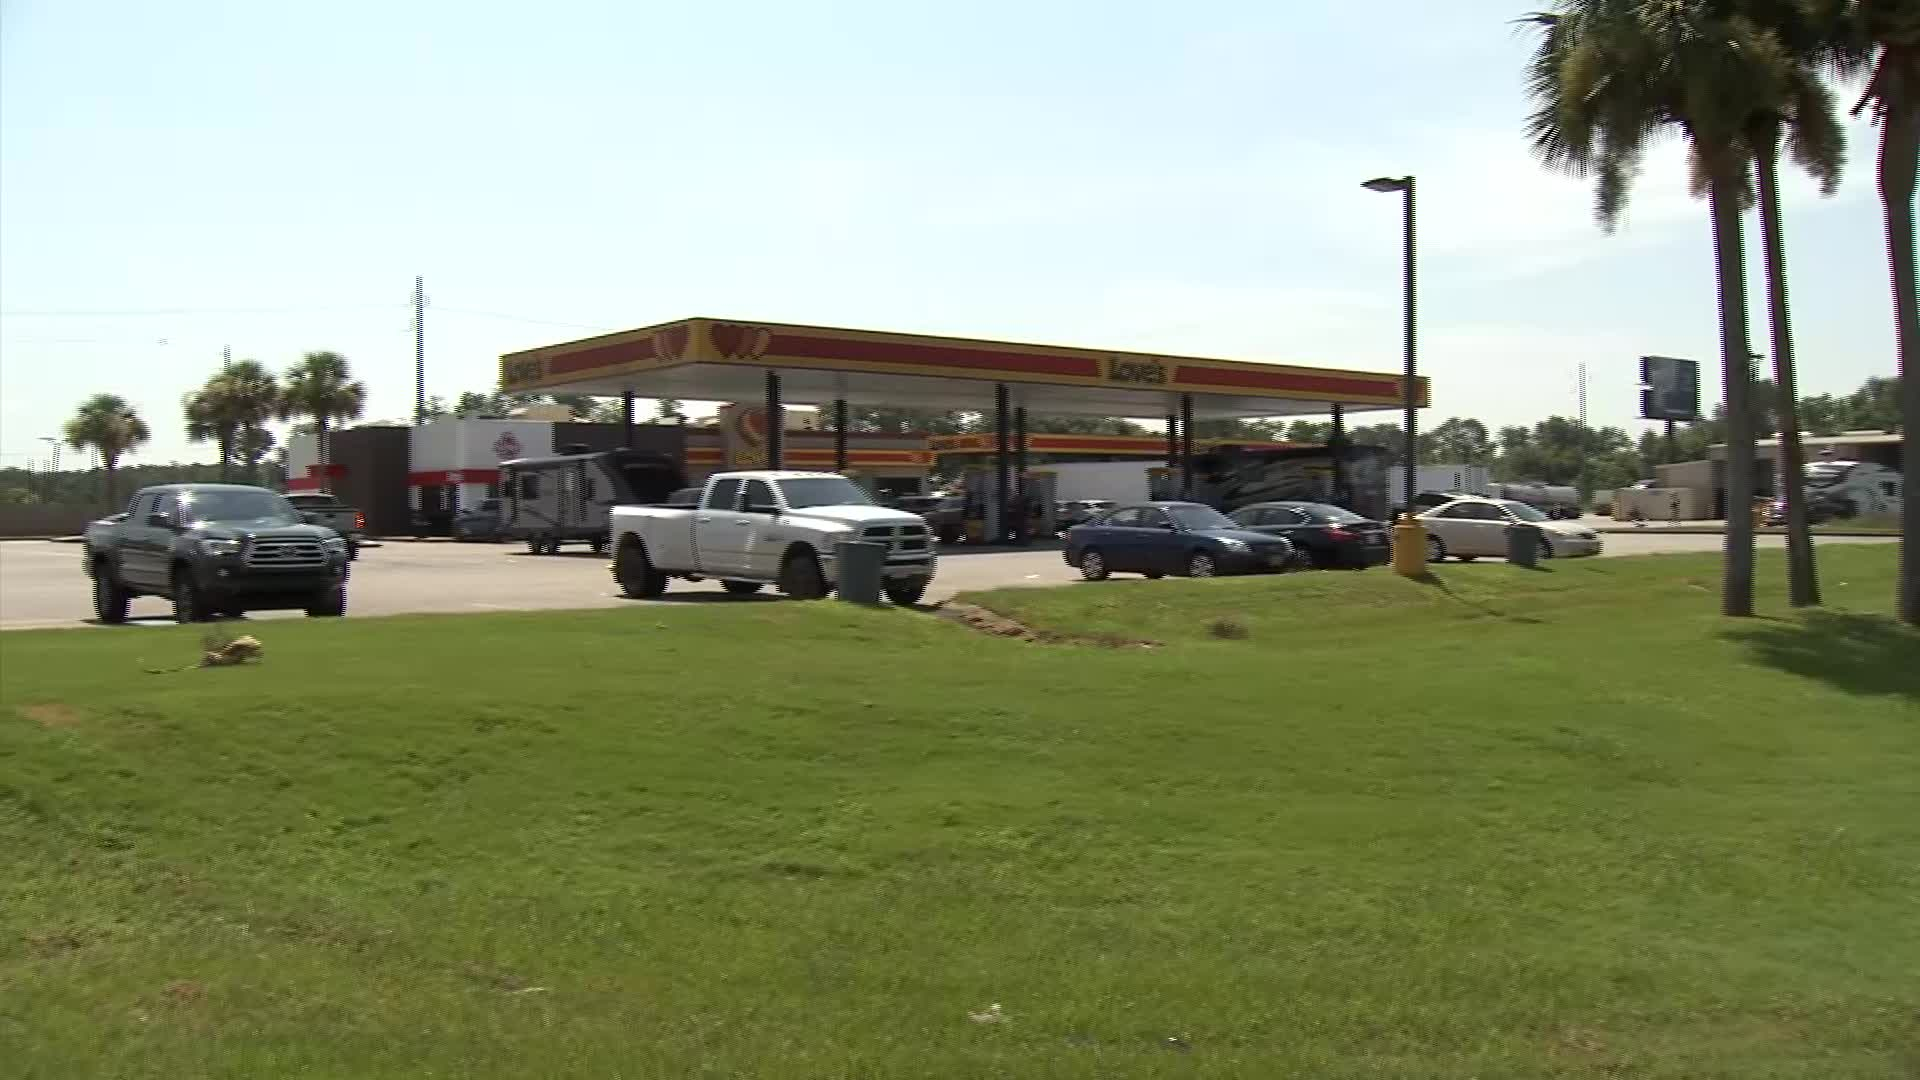 Toddlers naked, covered in feces found at Loxley truck stop